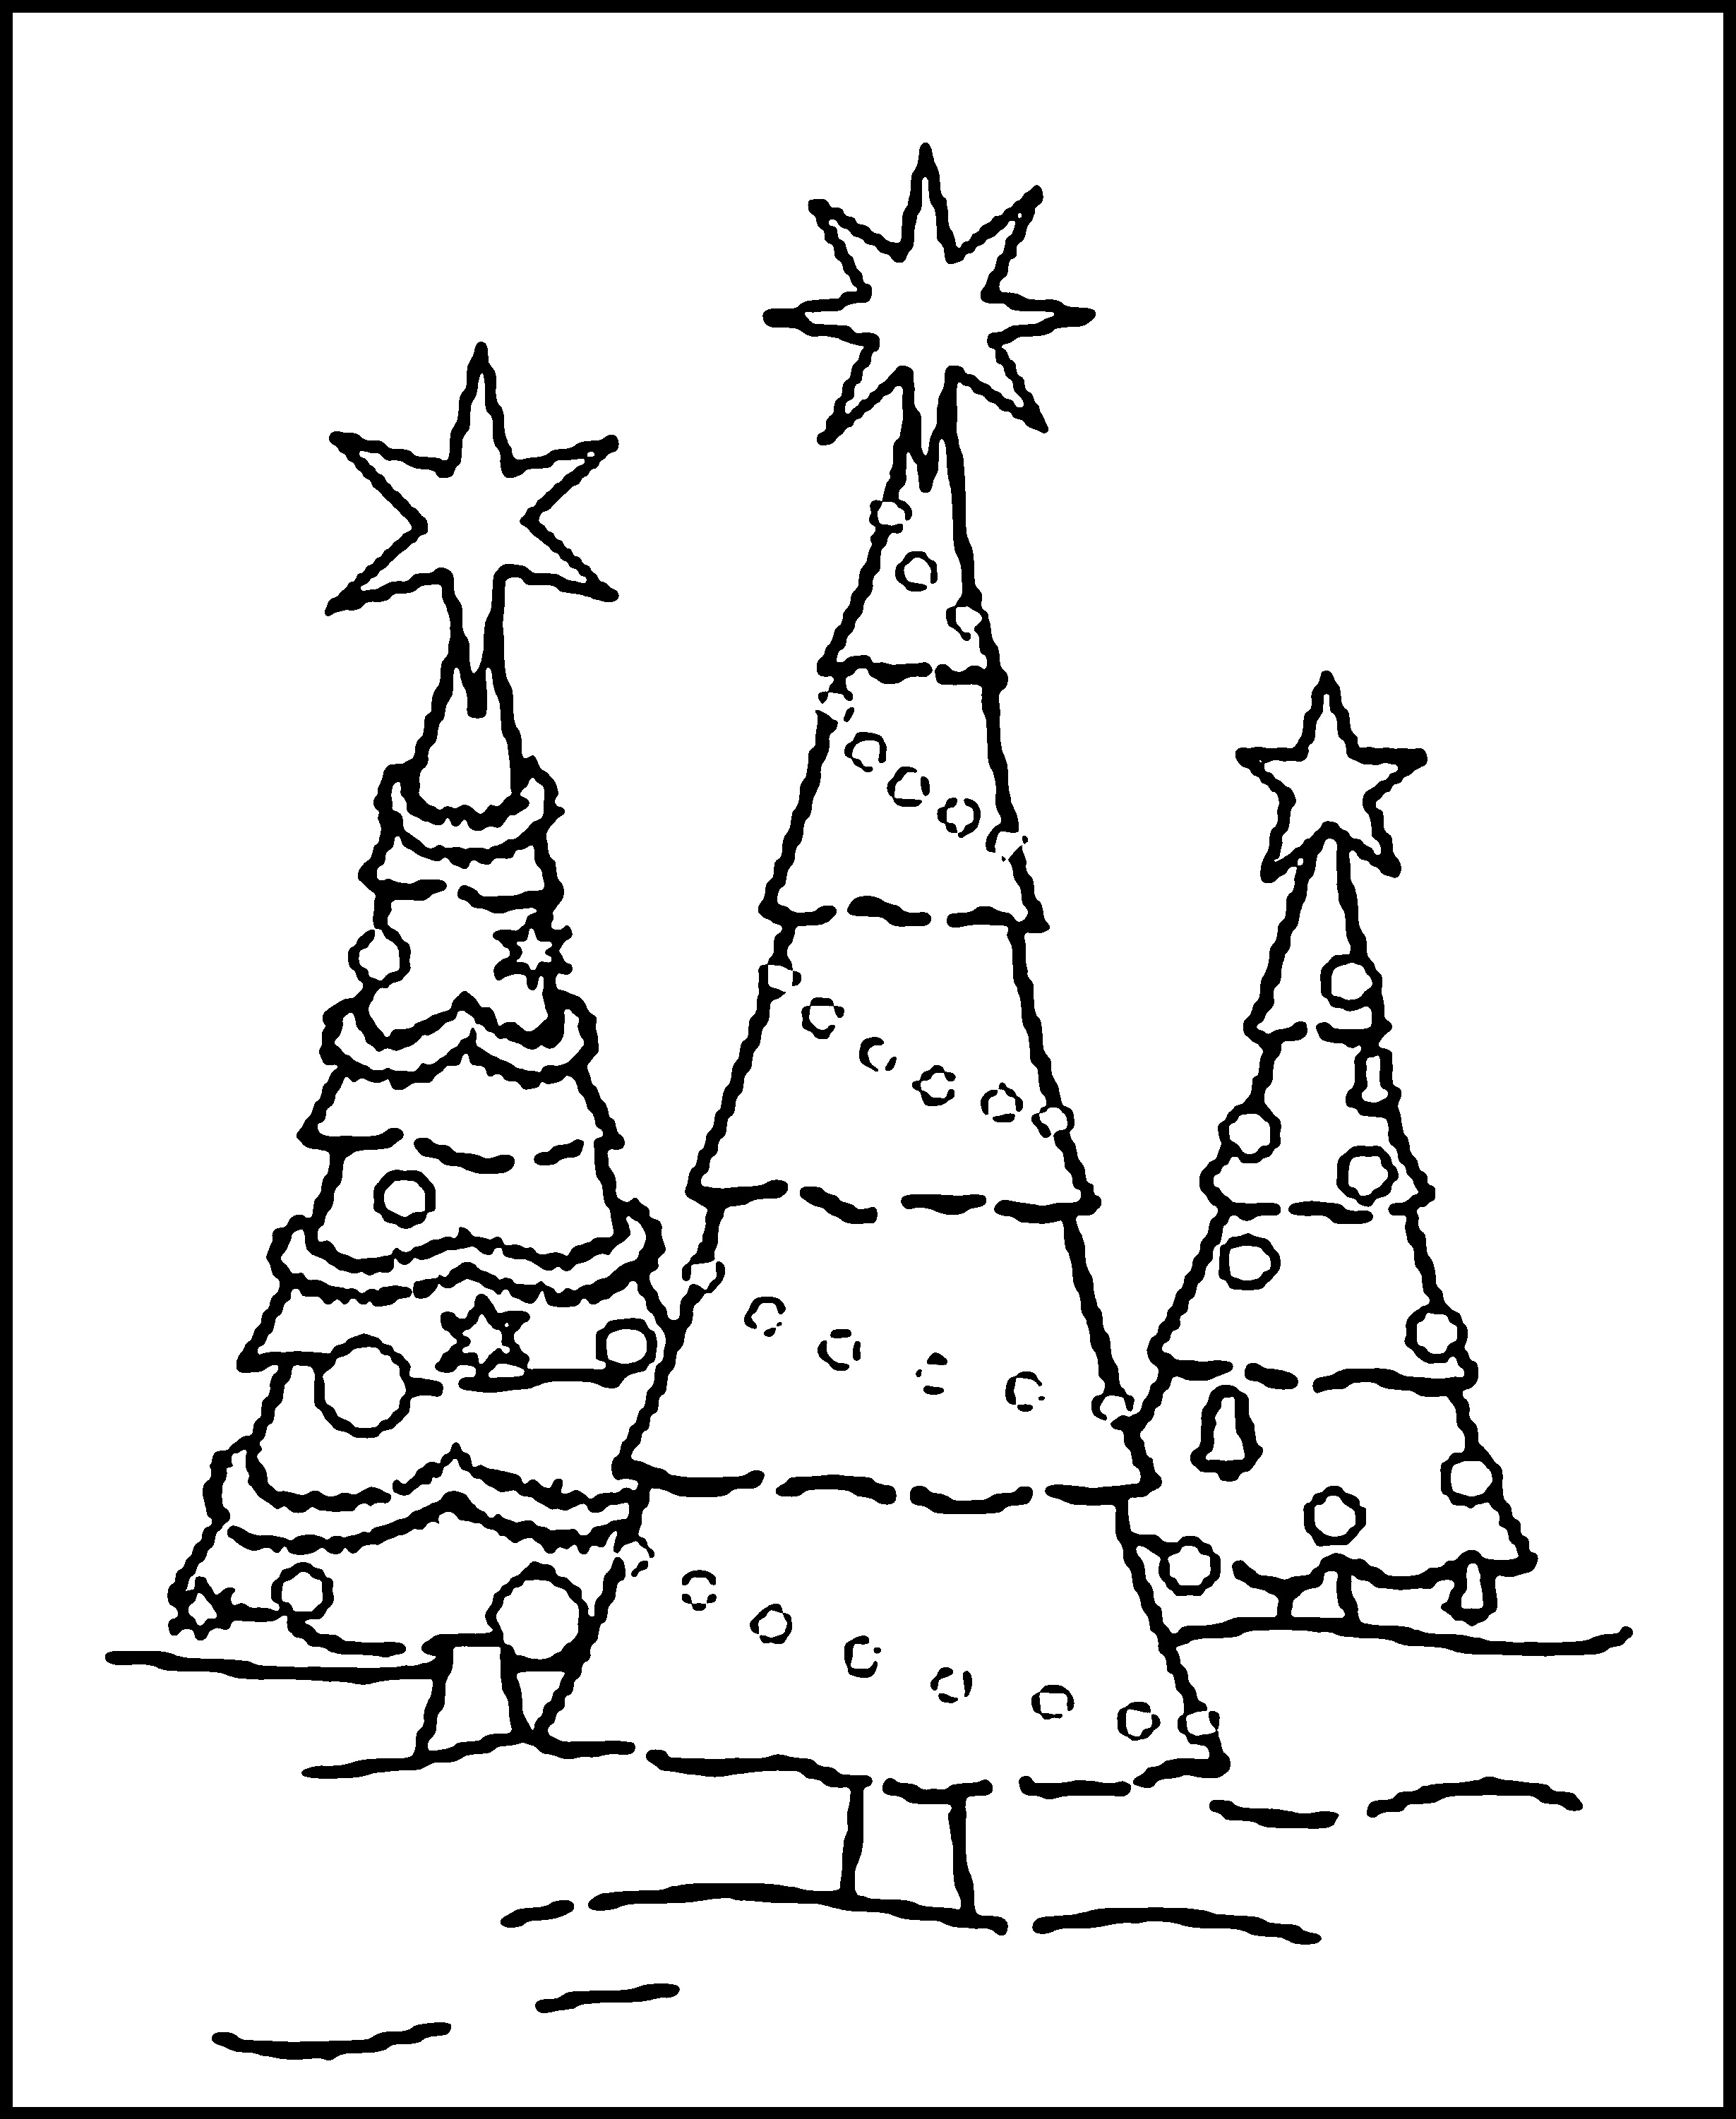 Adult Christmas Tree Coloring Pages Download Printable Of Apple Tree Coloring Page with Coloring Pages Apple orchard Download Download